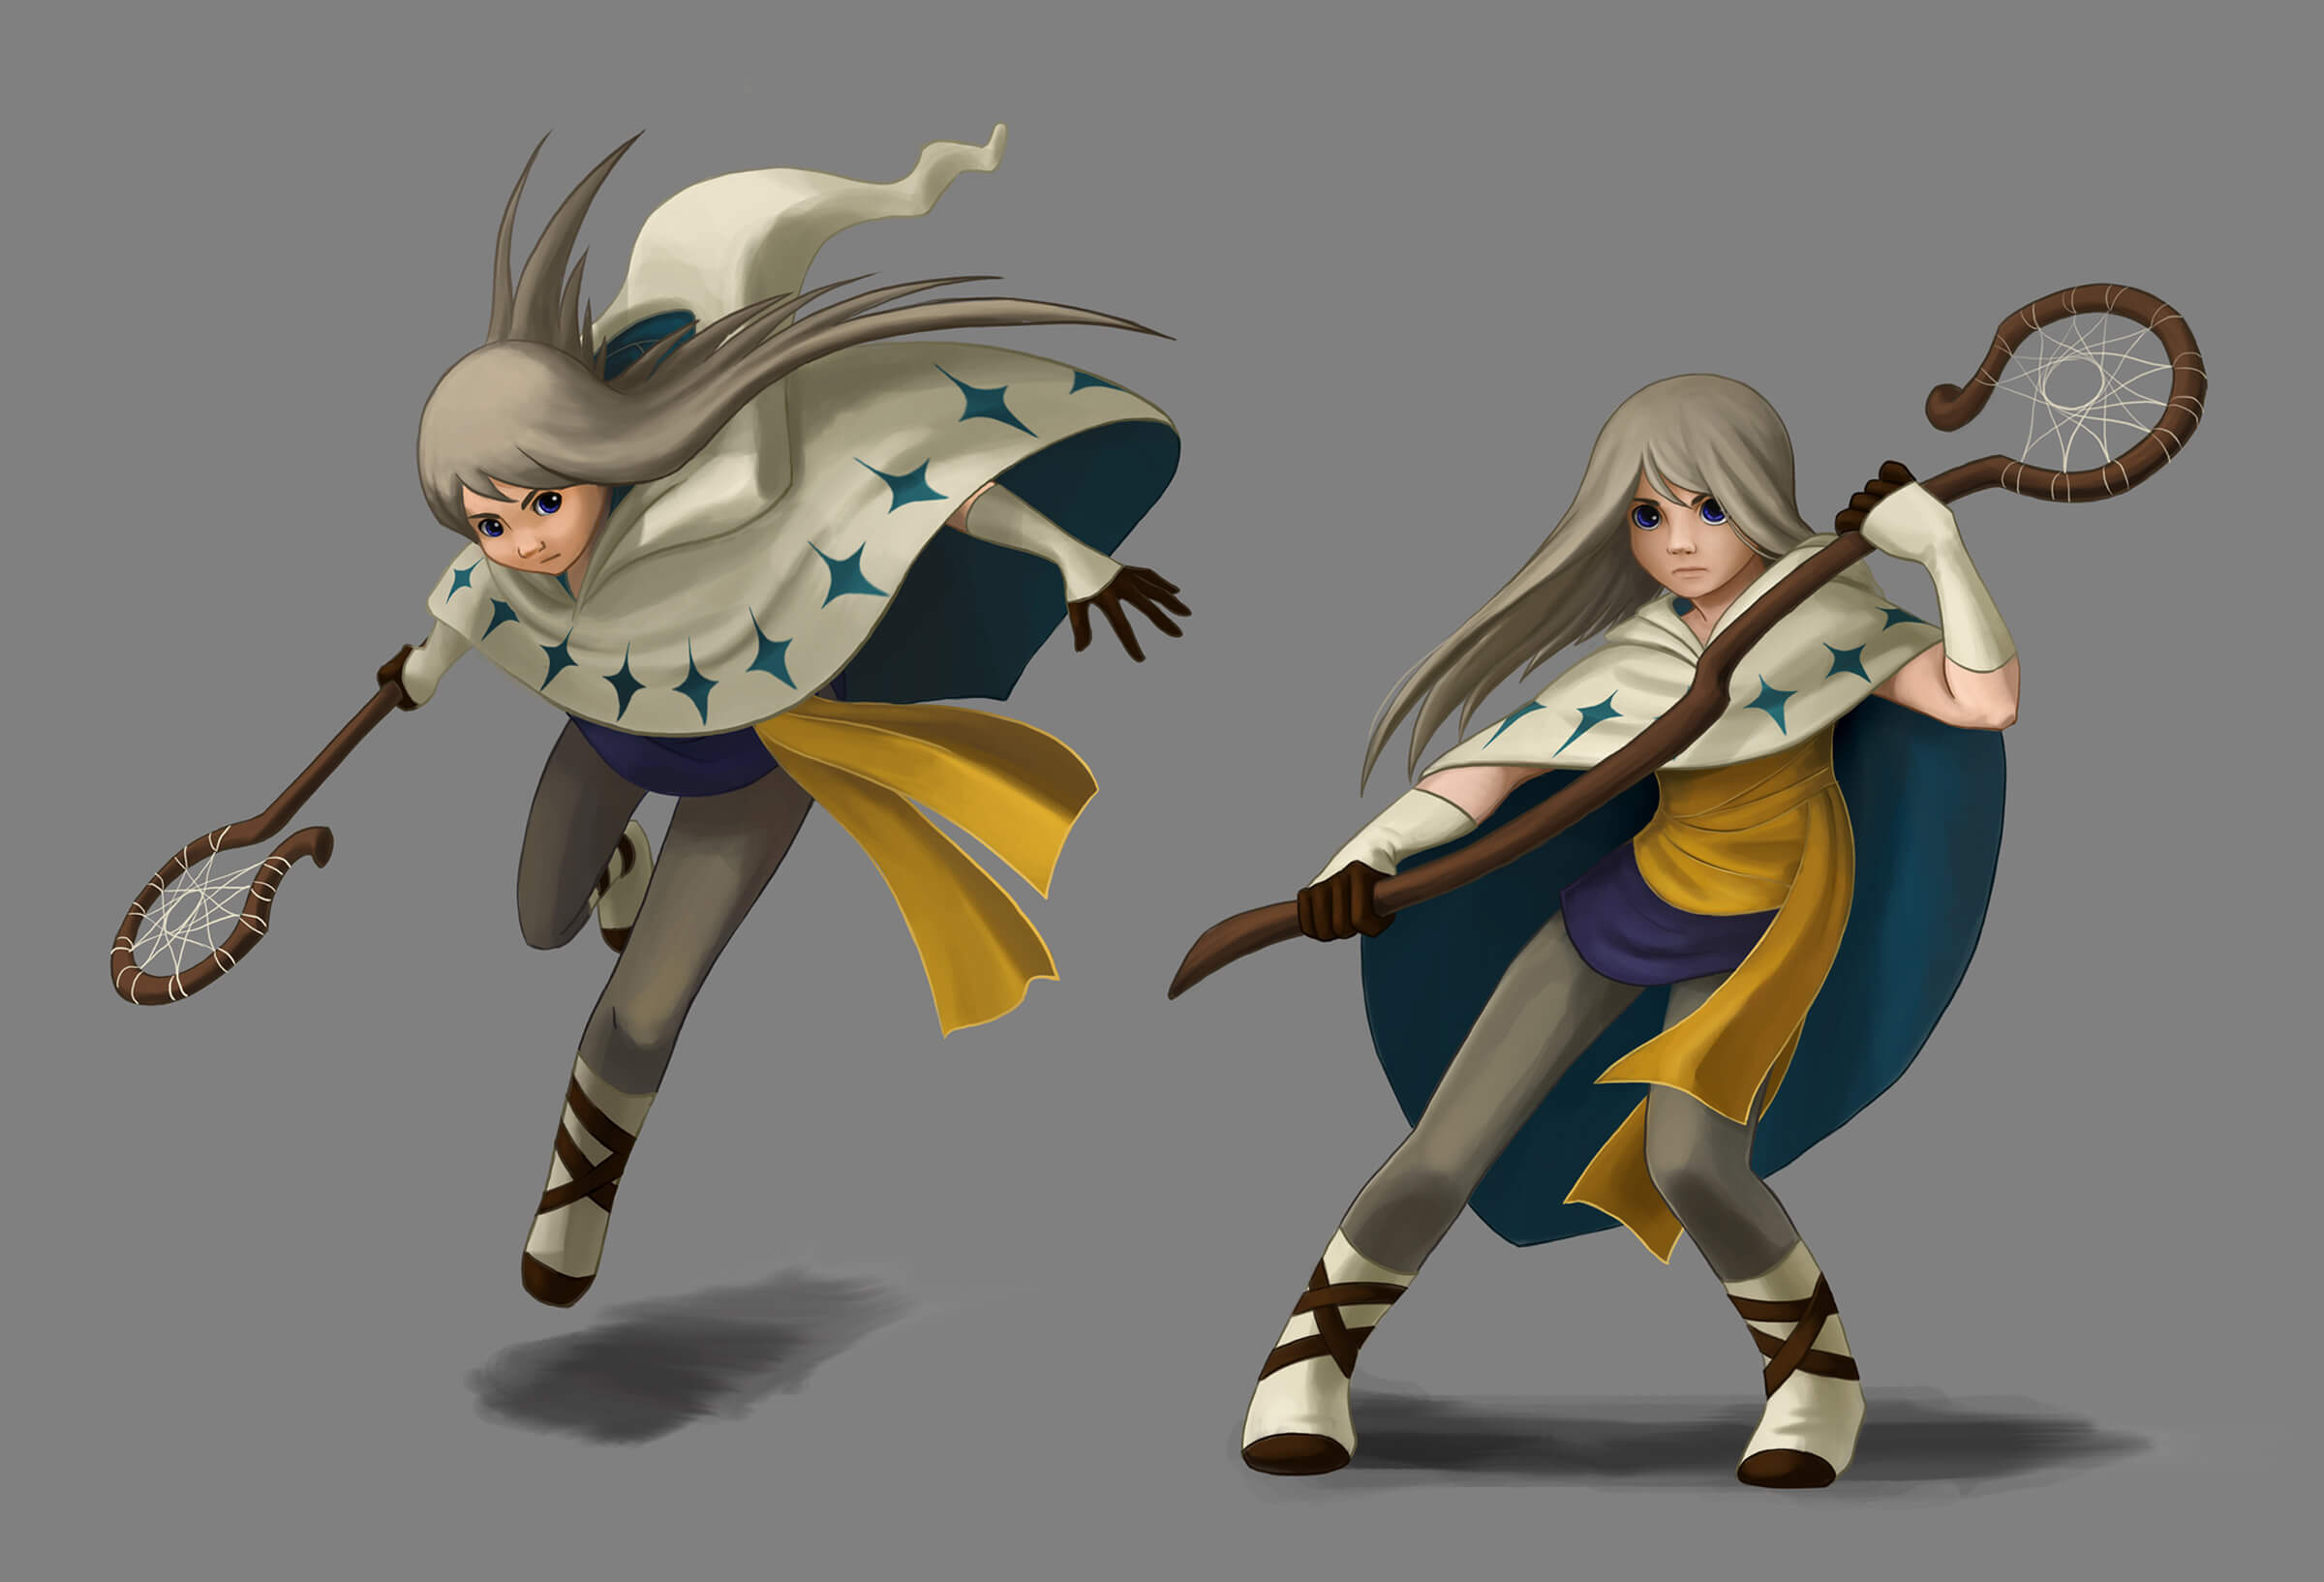 digital paintings of a female character with long hair wearing draped clothing and a cape, carrying a wooden staff